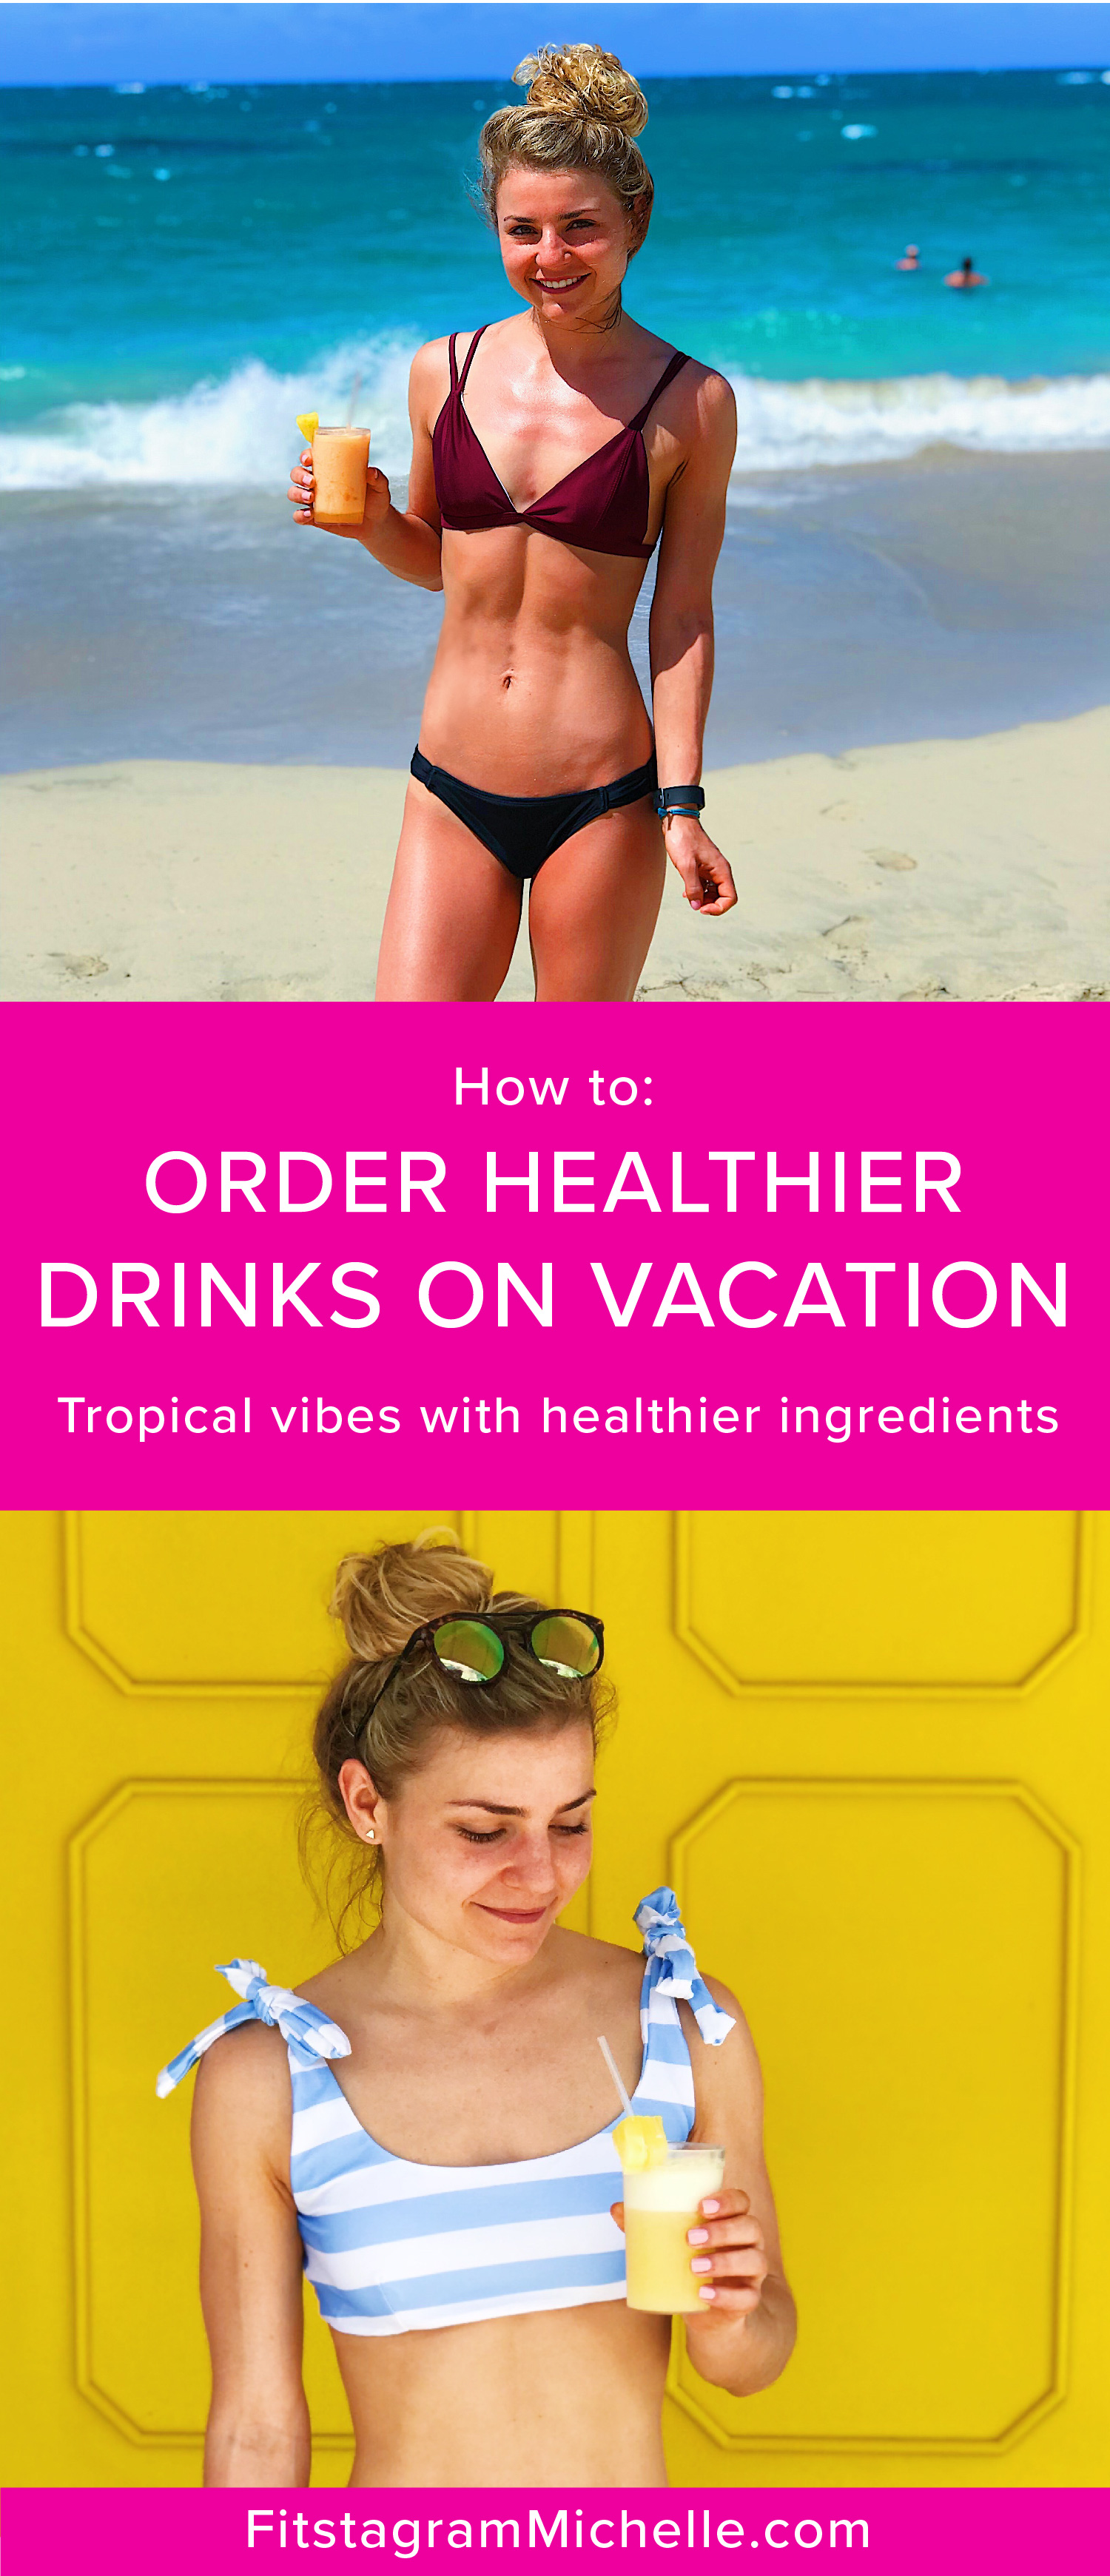 Healthier Drinks to order on vacation. Less calories, less sugar, much healthier. Enjoy the same tropical vibes with these easy drinks everyone will be swooning over.